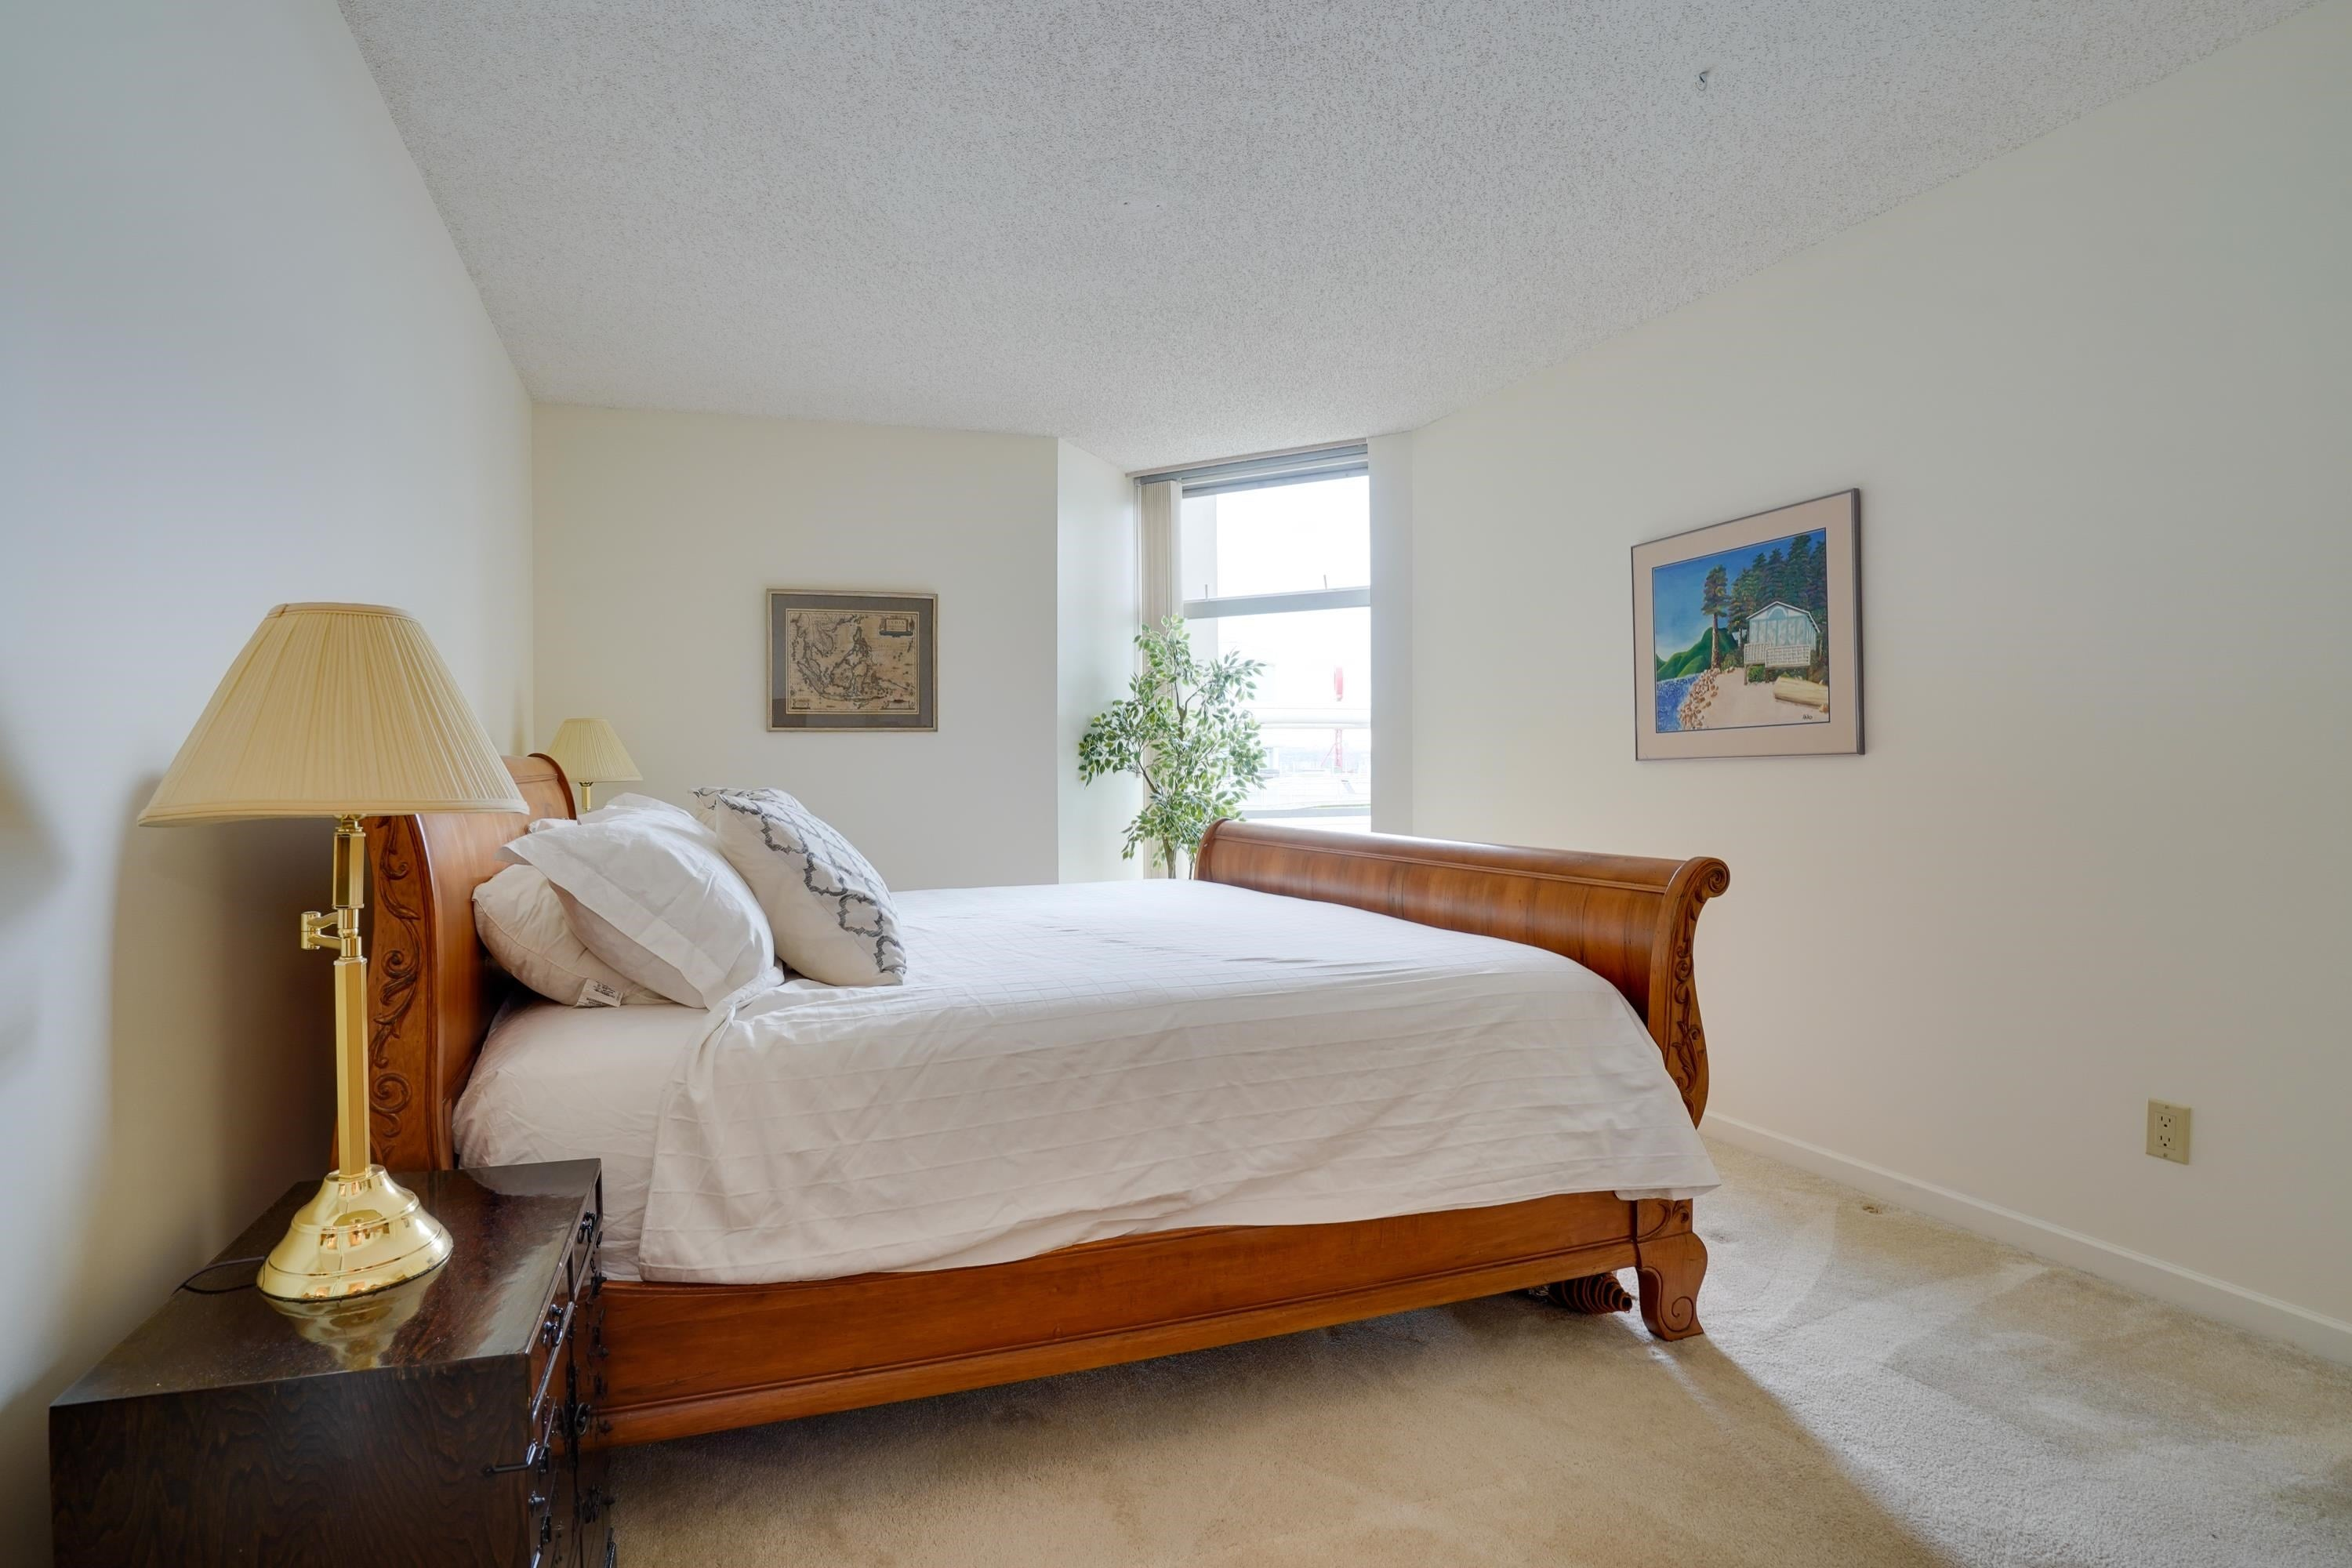 405 168 CHADWICK COURT - Lower Lonsdale Apartment/Condo for sale, 3 Bedrooms (R2619951) - #13